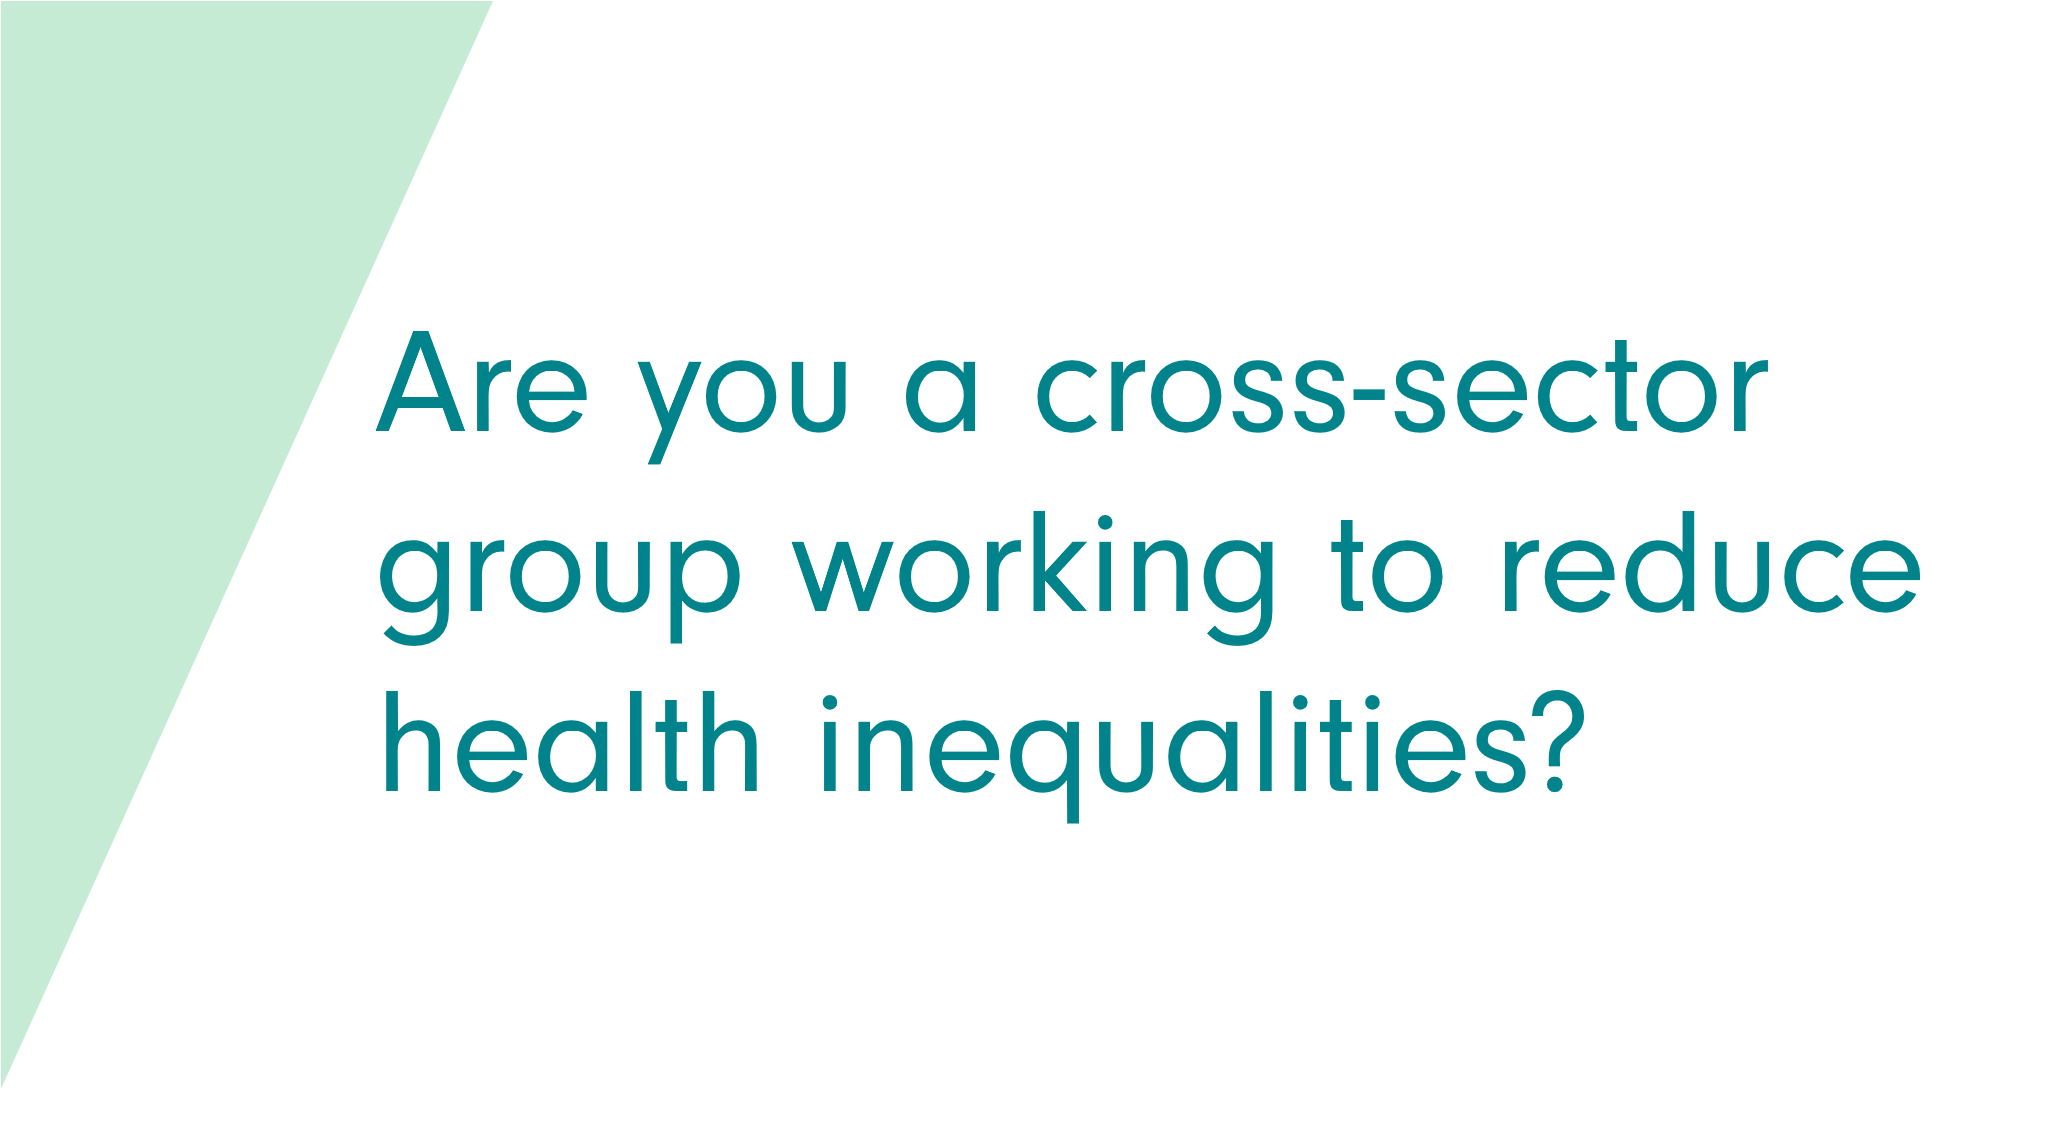 Are you working to address health inequalities?